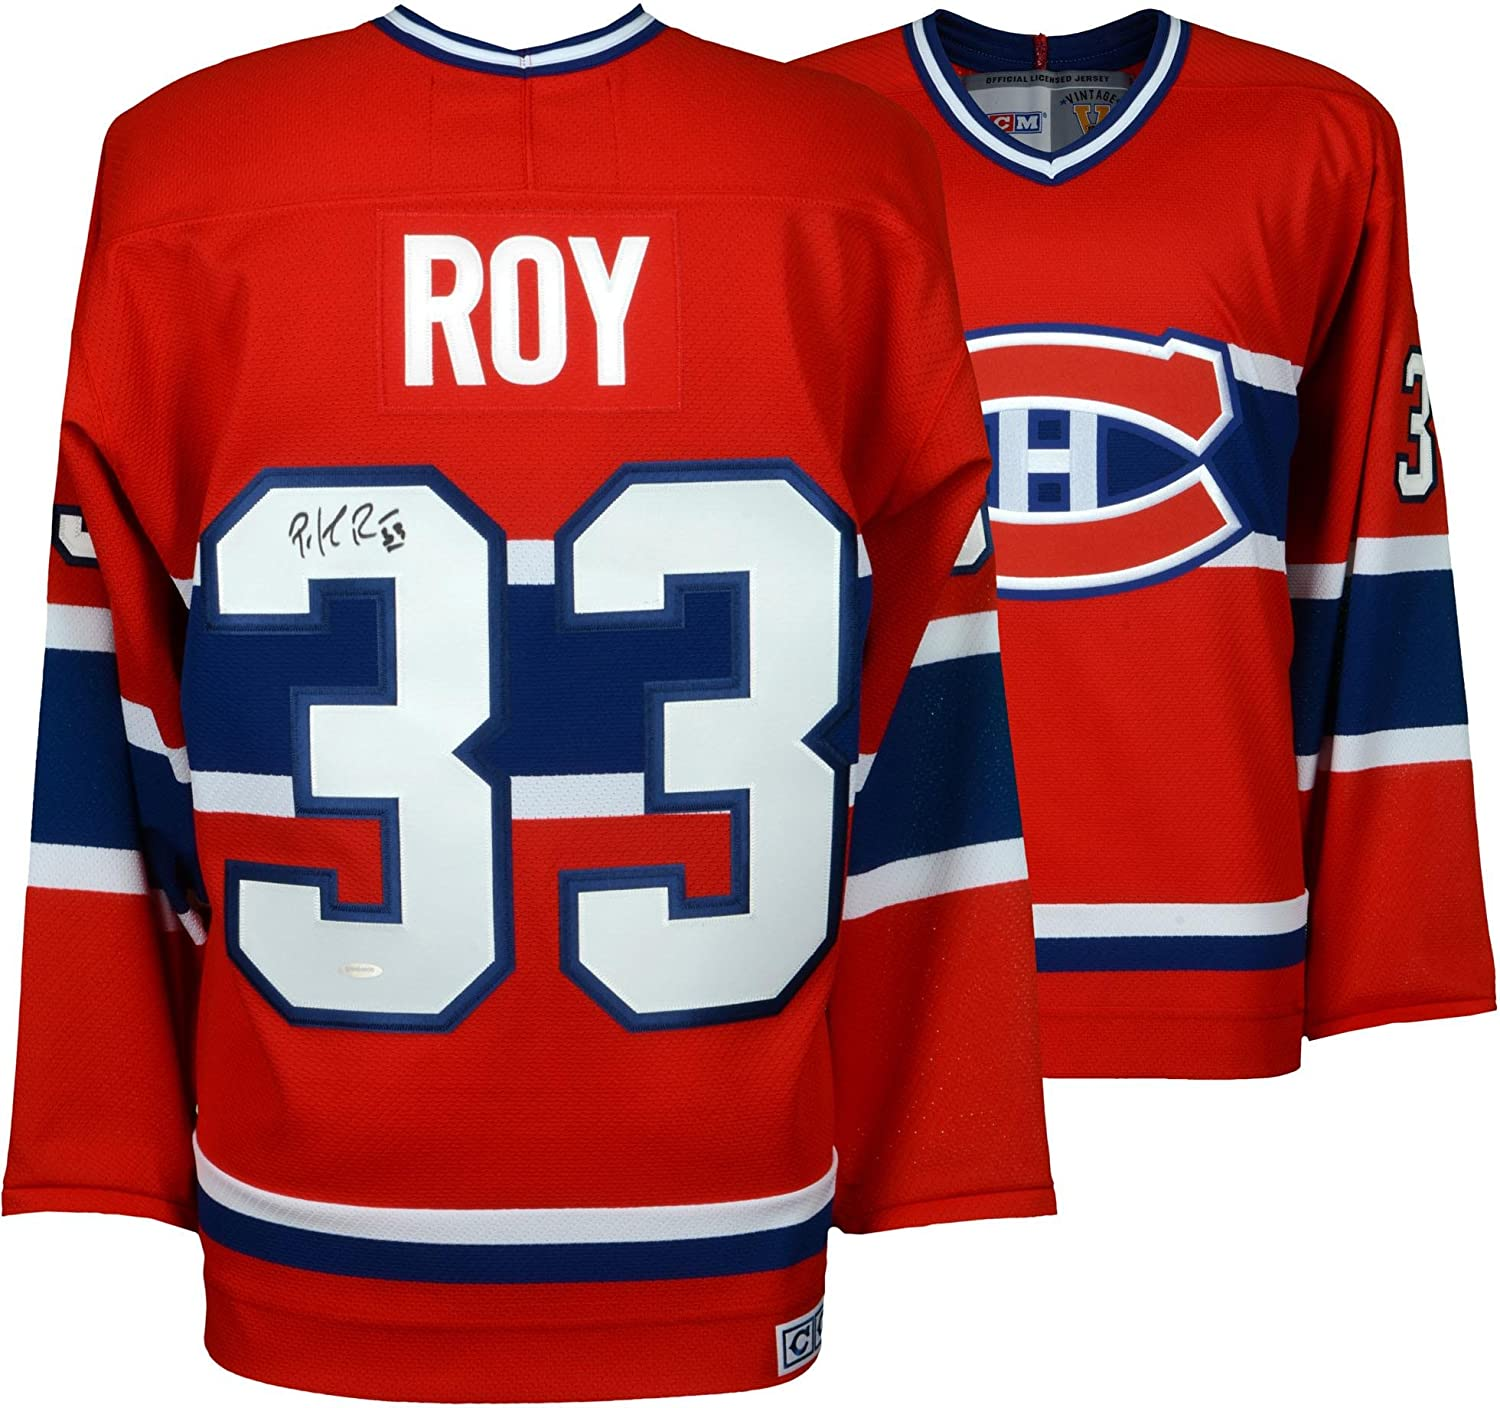 c76b649cd0a ... italy patrick roy montreal canadiens autographed centennial red jersey  upper deck fanatics authentic certified at amazons